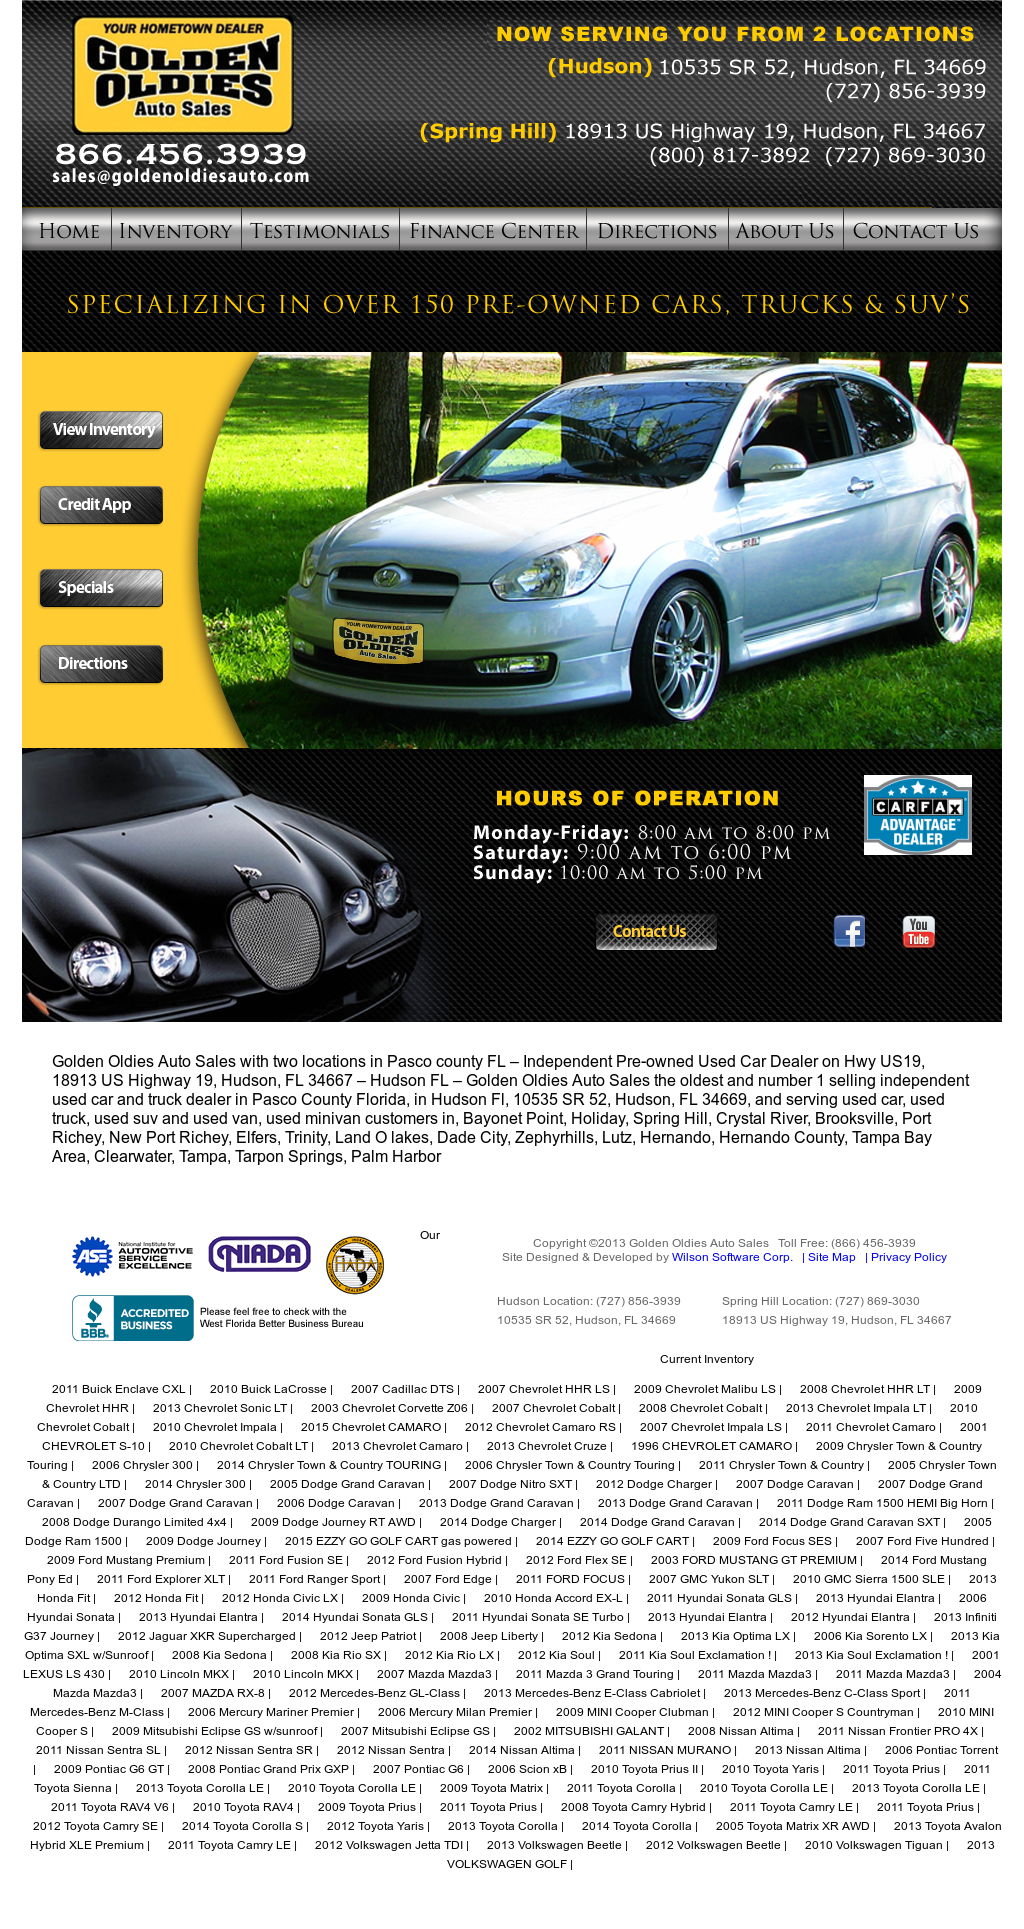 Golden Oldies Auto Sales Competitors, Revenue and Employees - Owler